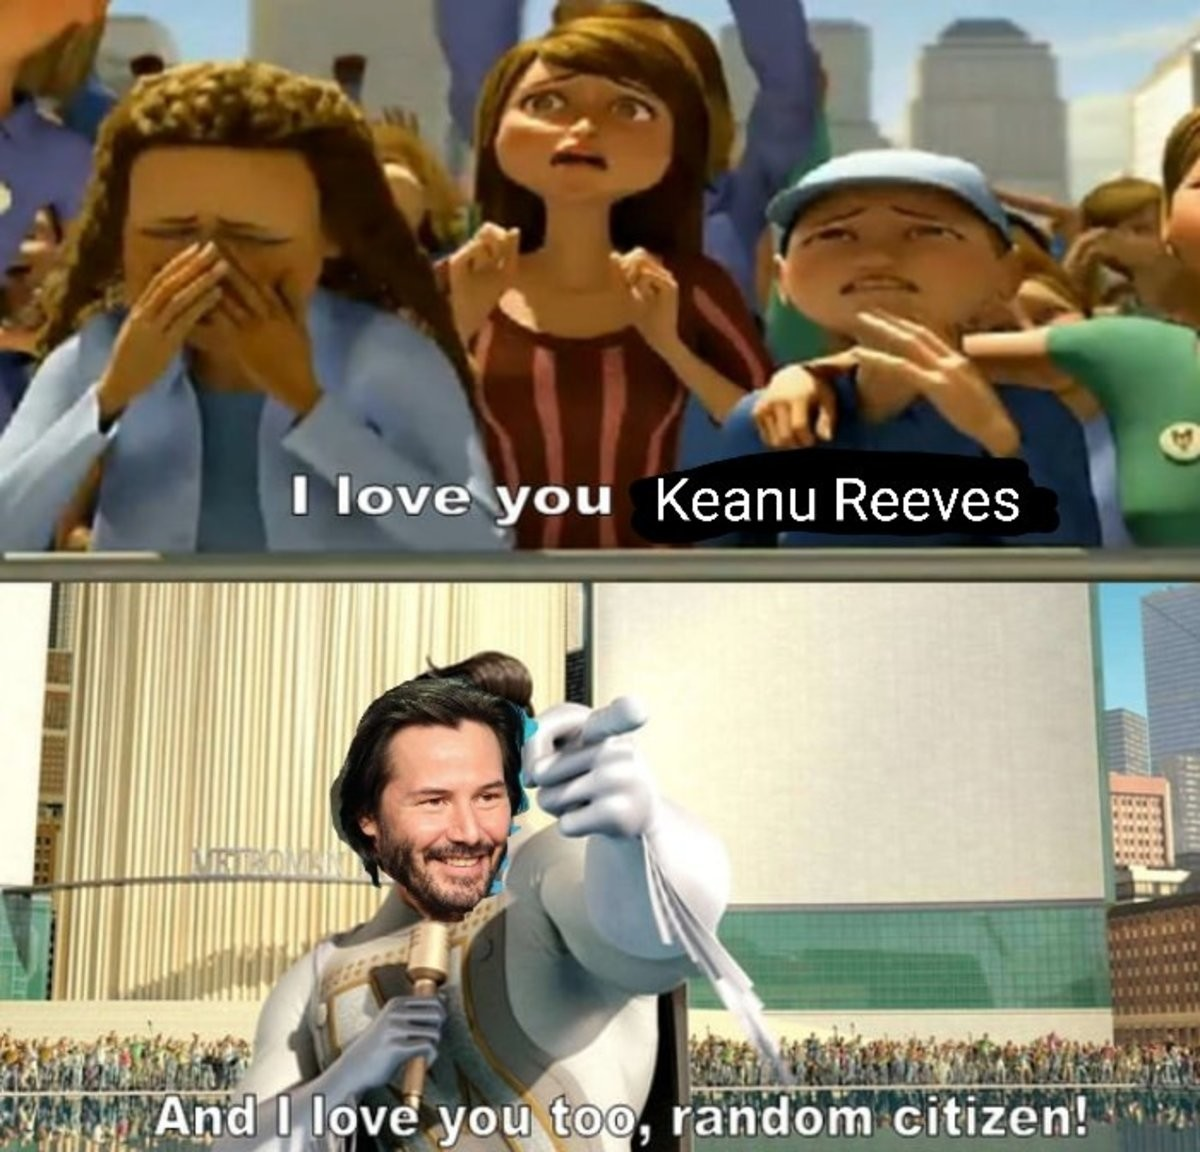 A hero the gamers deserve. .. Keanu reminding us that we're all breathtaking was easily the #1 highlight of E3